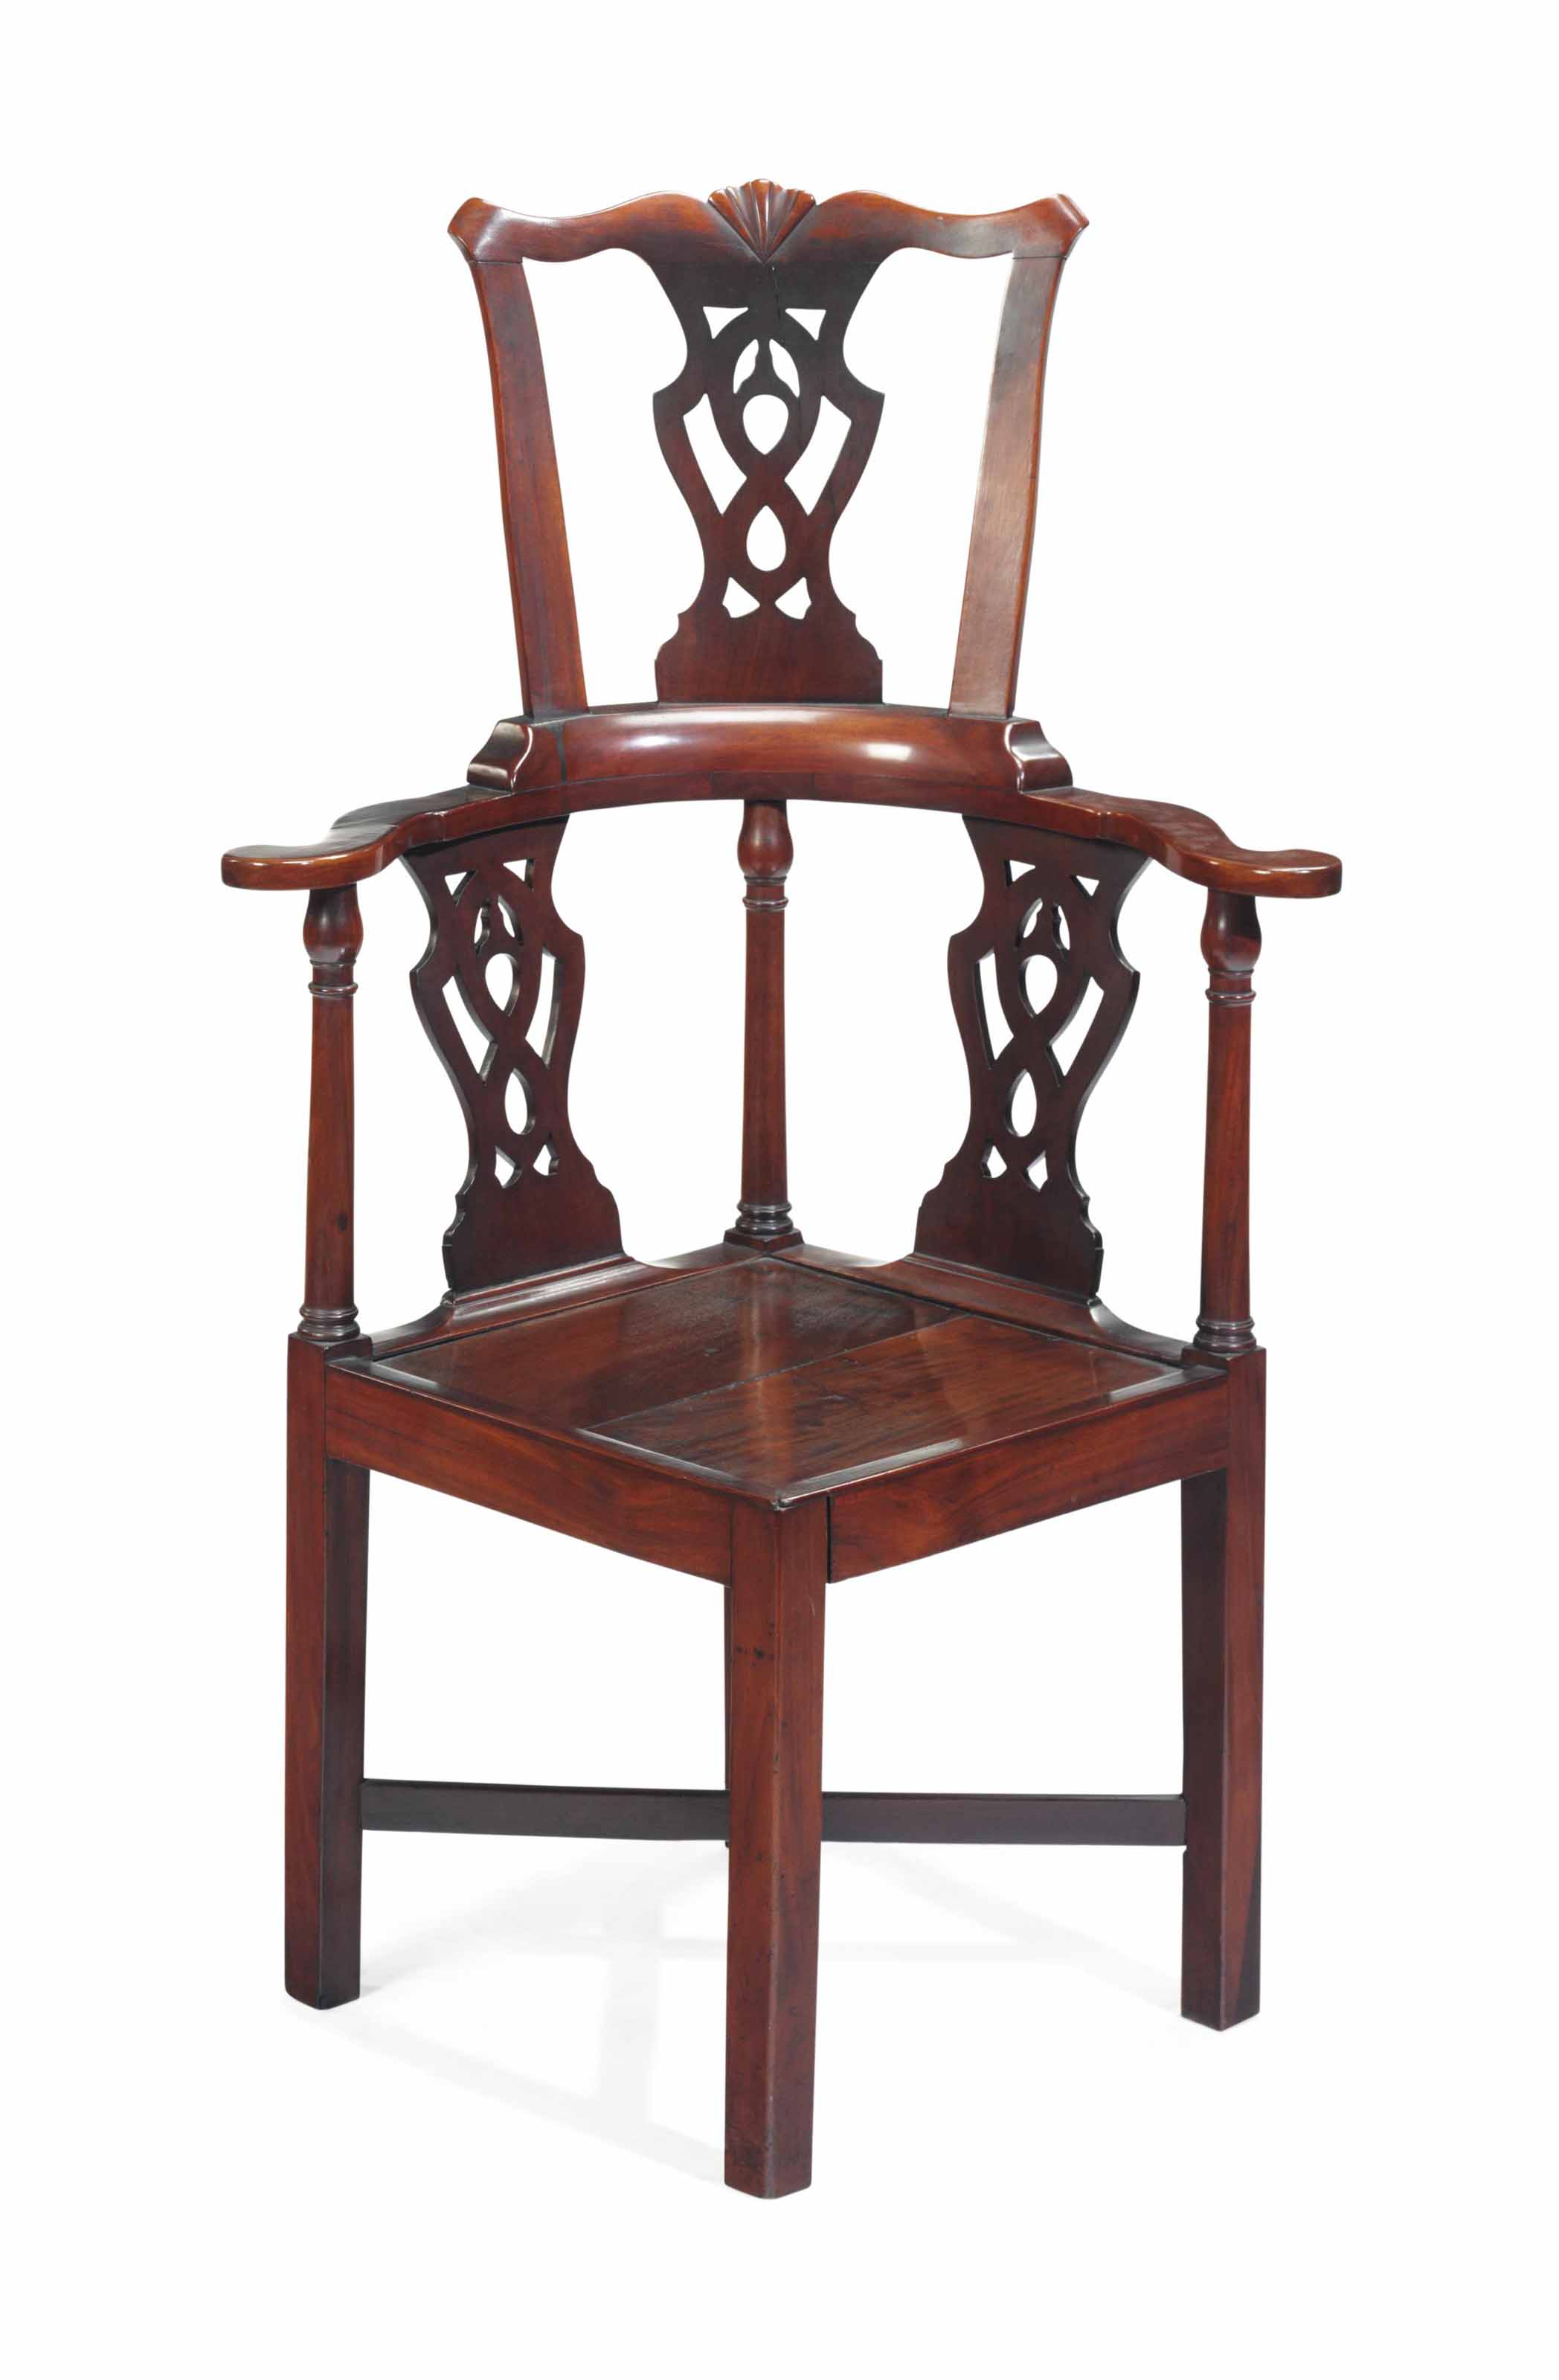 A MAHOGANY ROUNDABOUT CHAIR